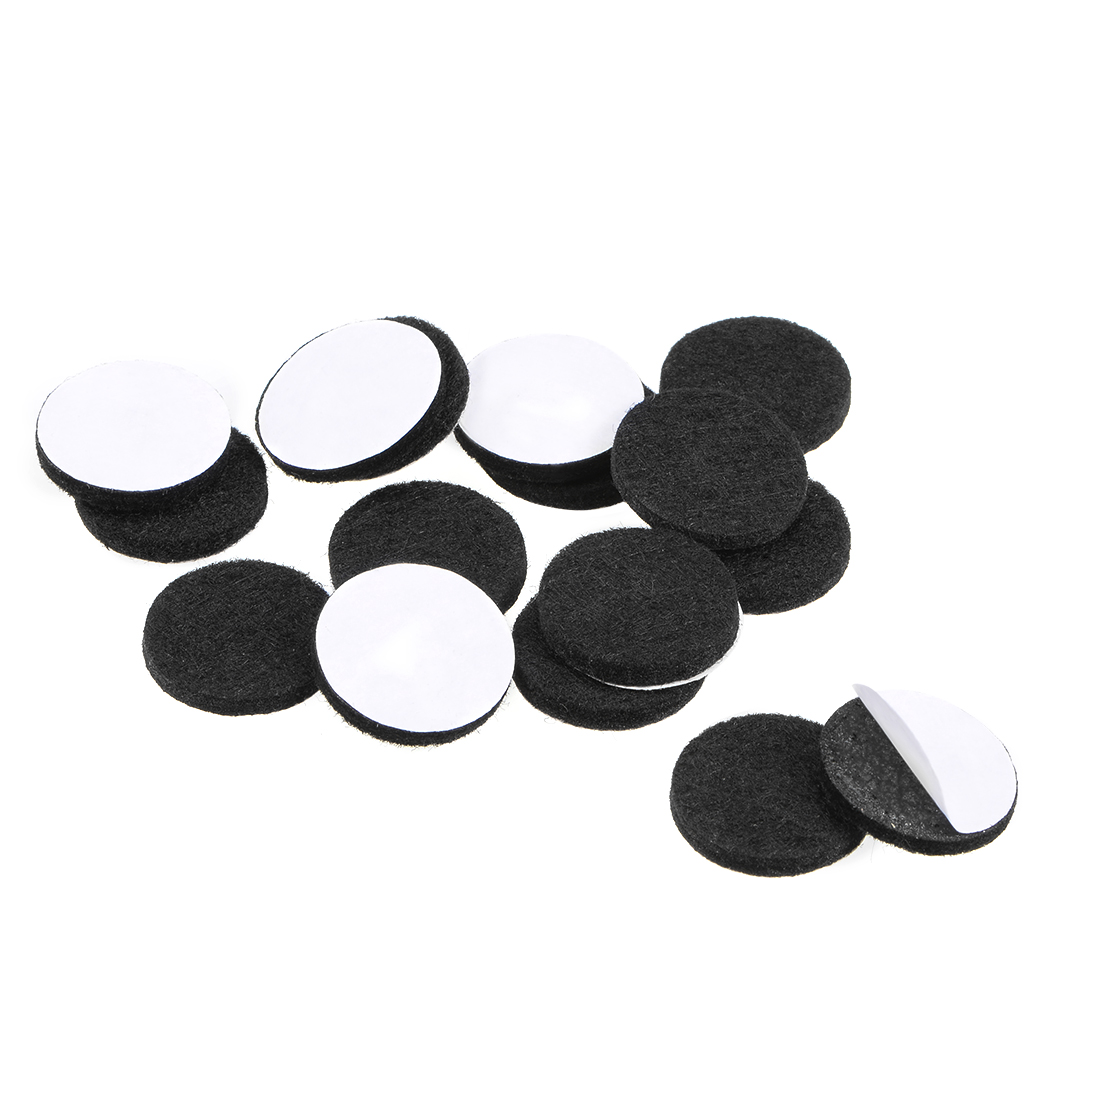 Furniture Pads Adhesive Felt Pads 20mm Diameter 3mm Thick Round Black 48Pcs